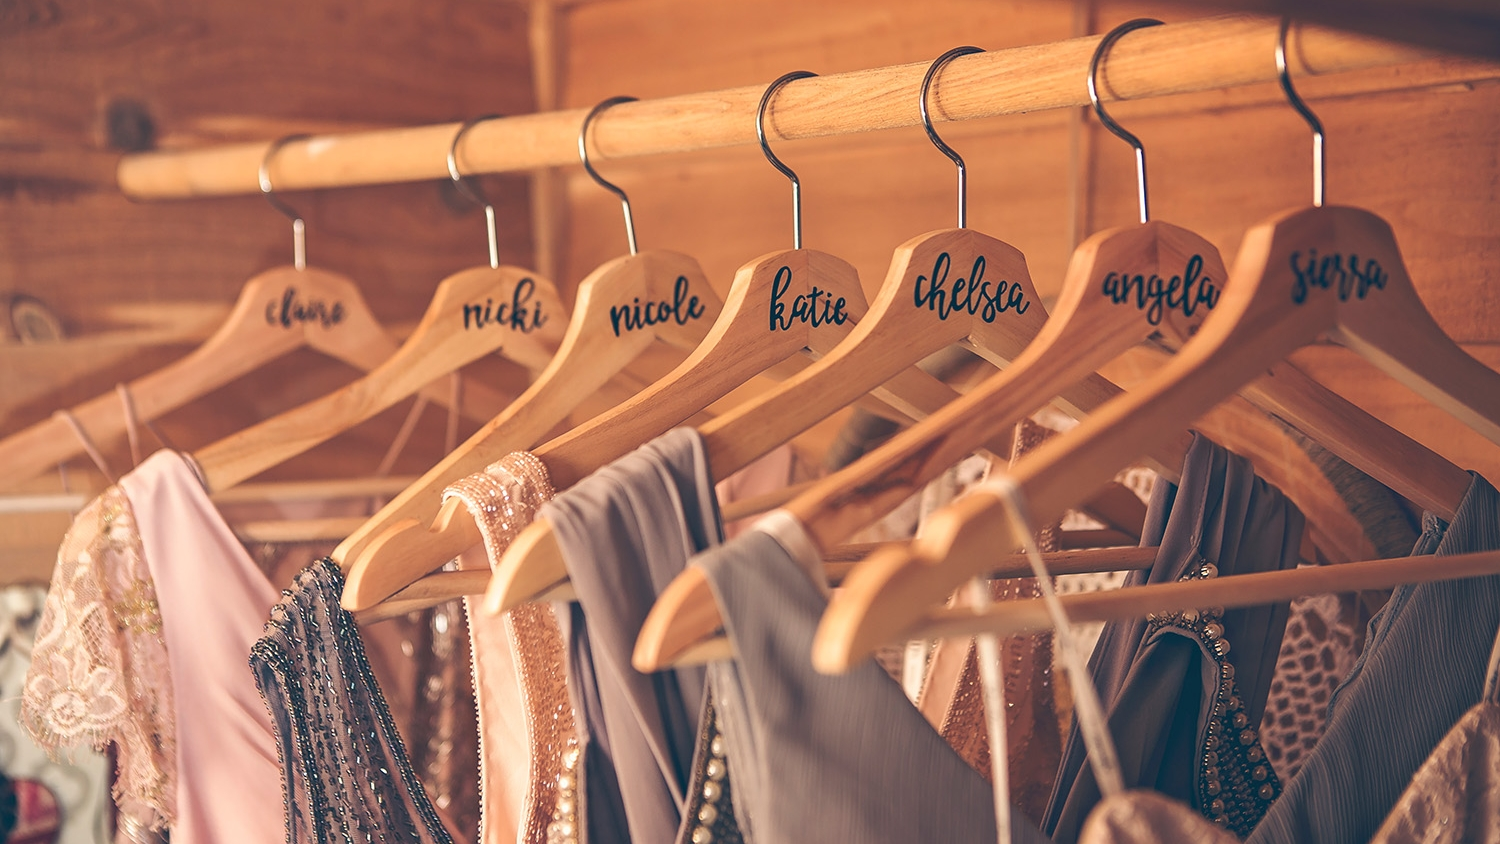 Personalized hangers for bridesmaids dresses